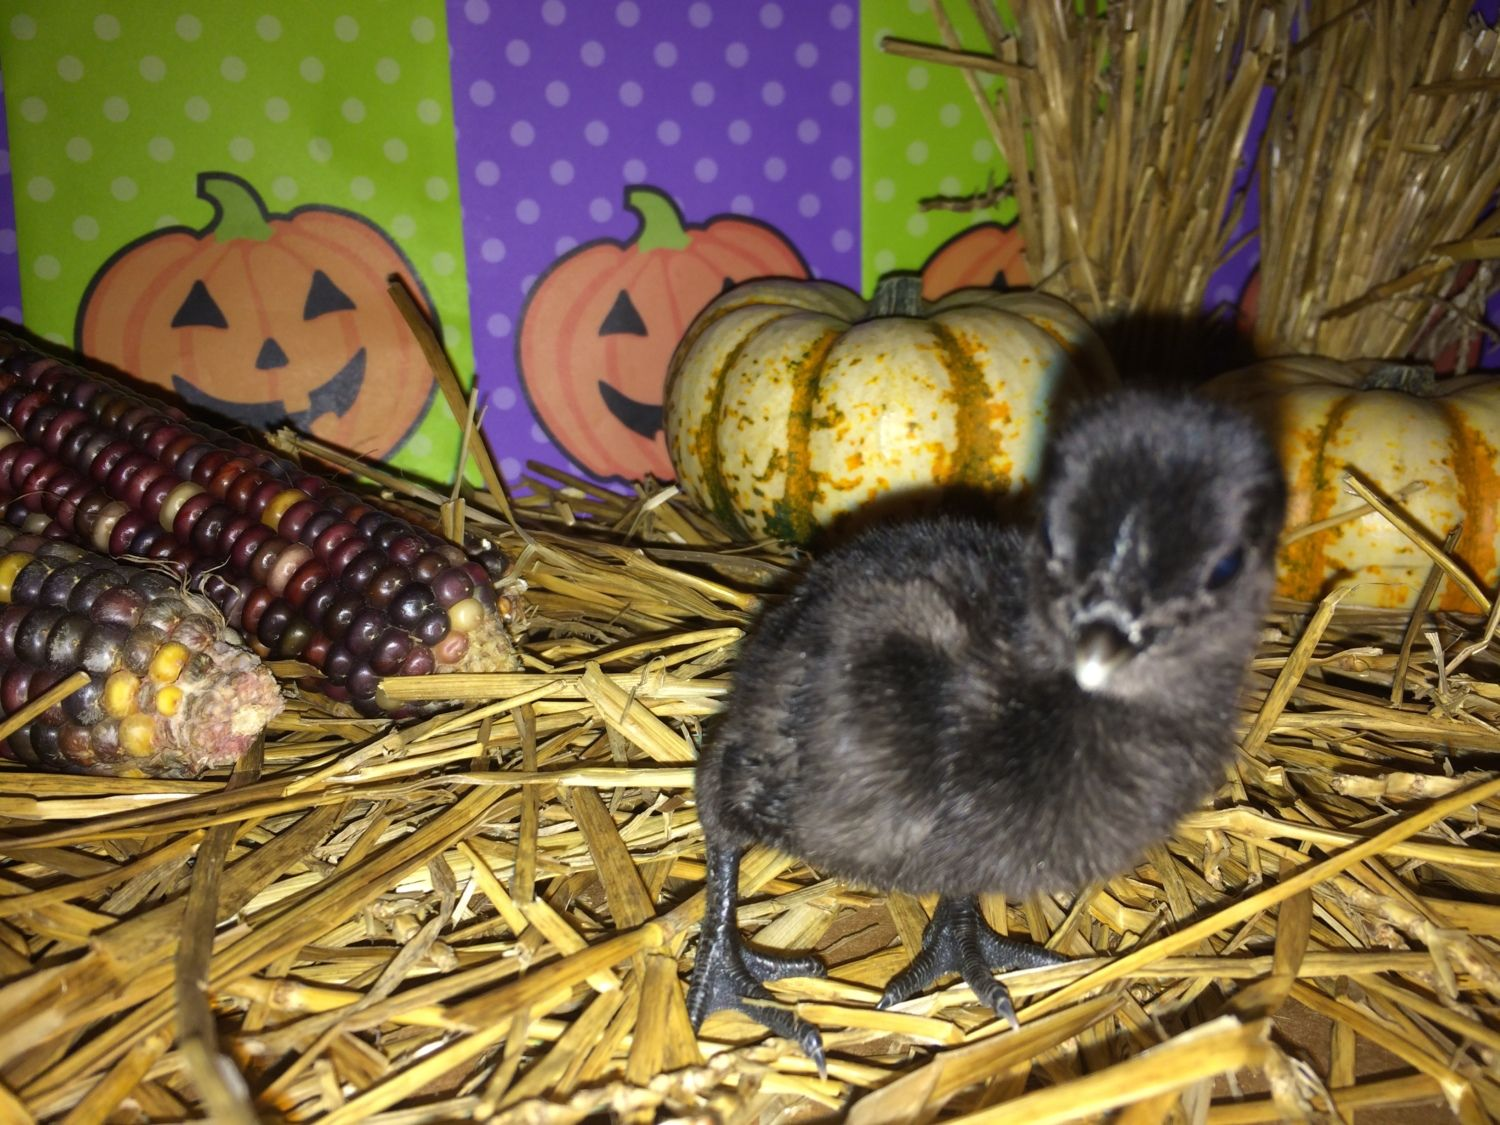 birdman55's photos in Fall/Autumn Poultry PHOTO Contest! Halloween Hatch-a-Long 2016 w/ Hosts, Mike, Sally & BantyChooks